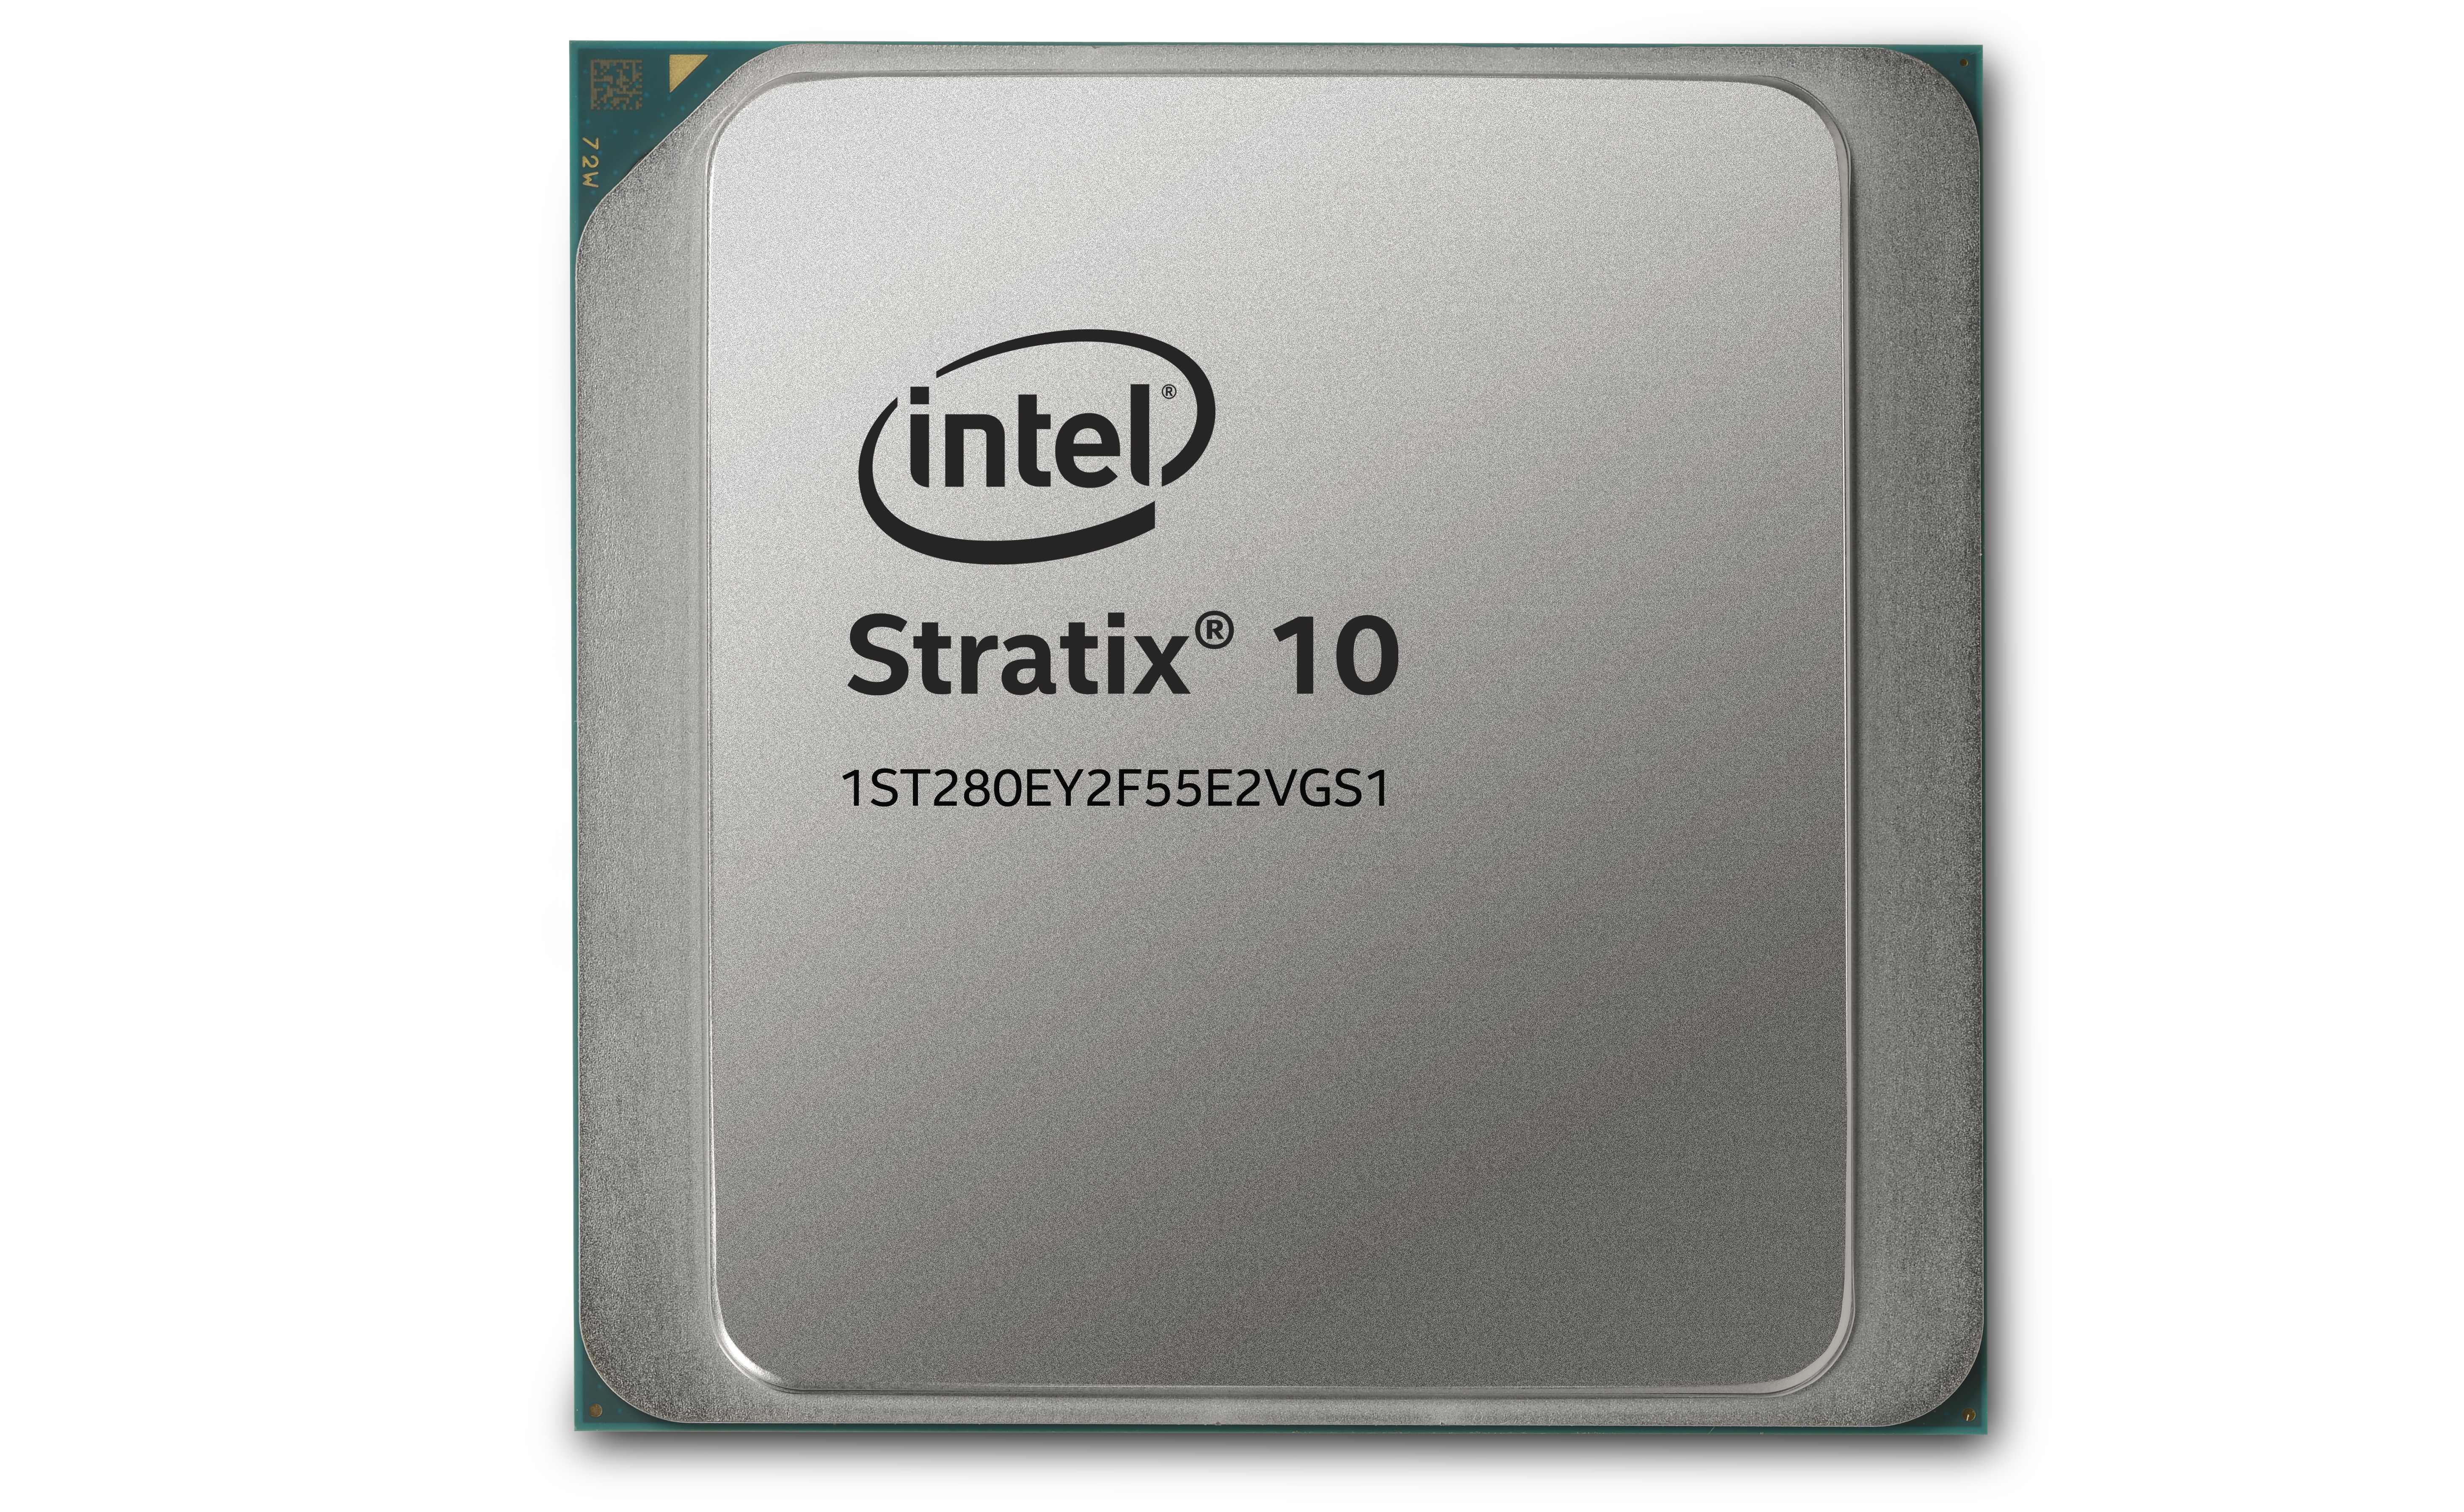 Intel Launches Stratix 10 TX: Leveraging EMIB with 58G Transceivers